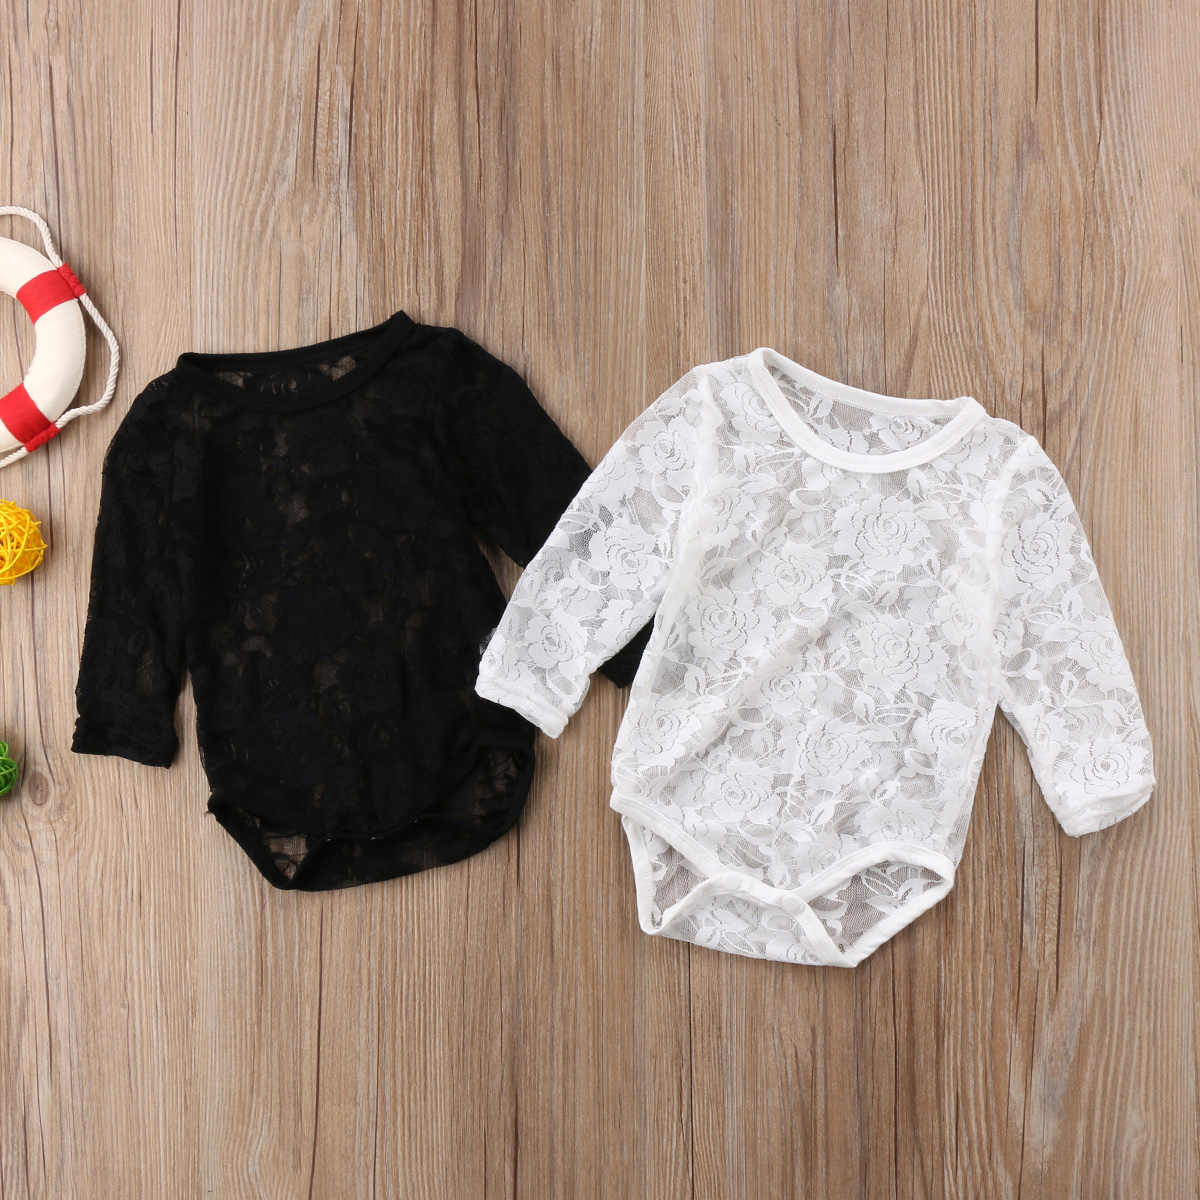 2018 Infant Newborn Baby Girls Long Sleeves Lace Sunsuit White or Black Jumpsuit Bodysuit Playsuit Solid Casual Outfit